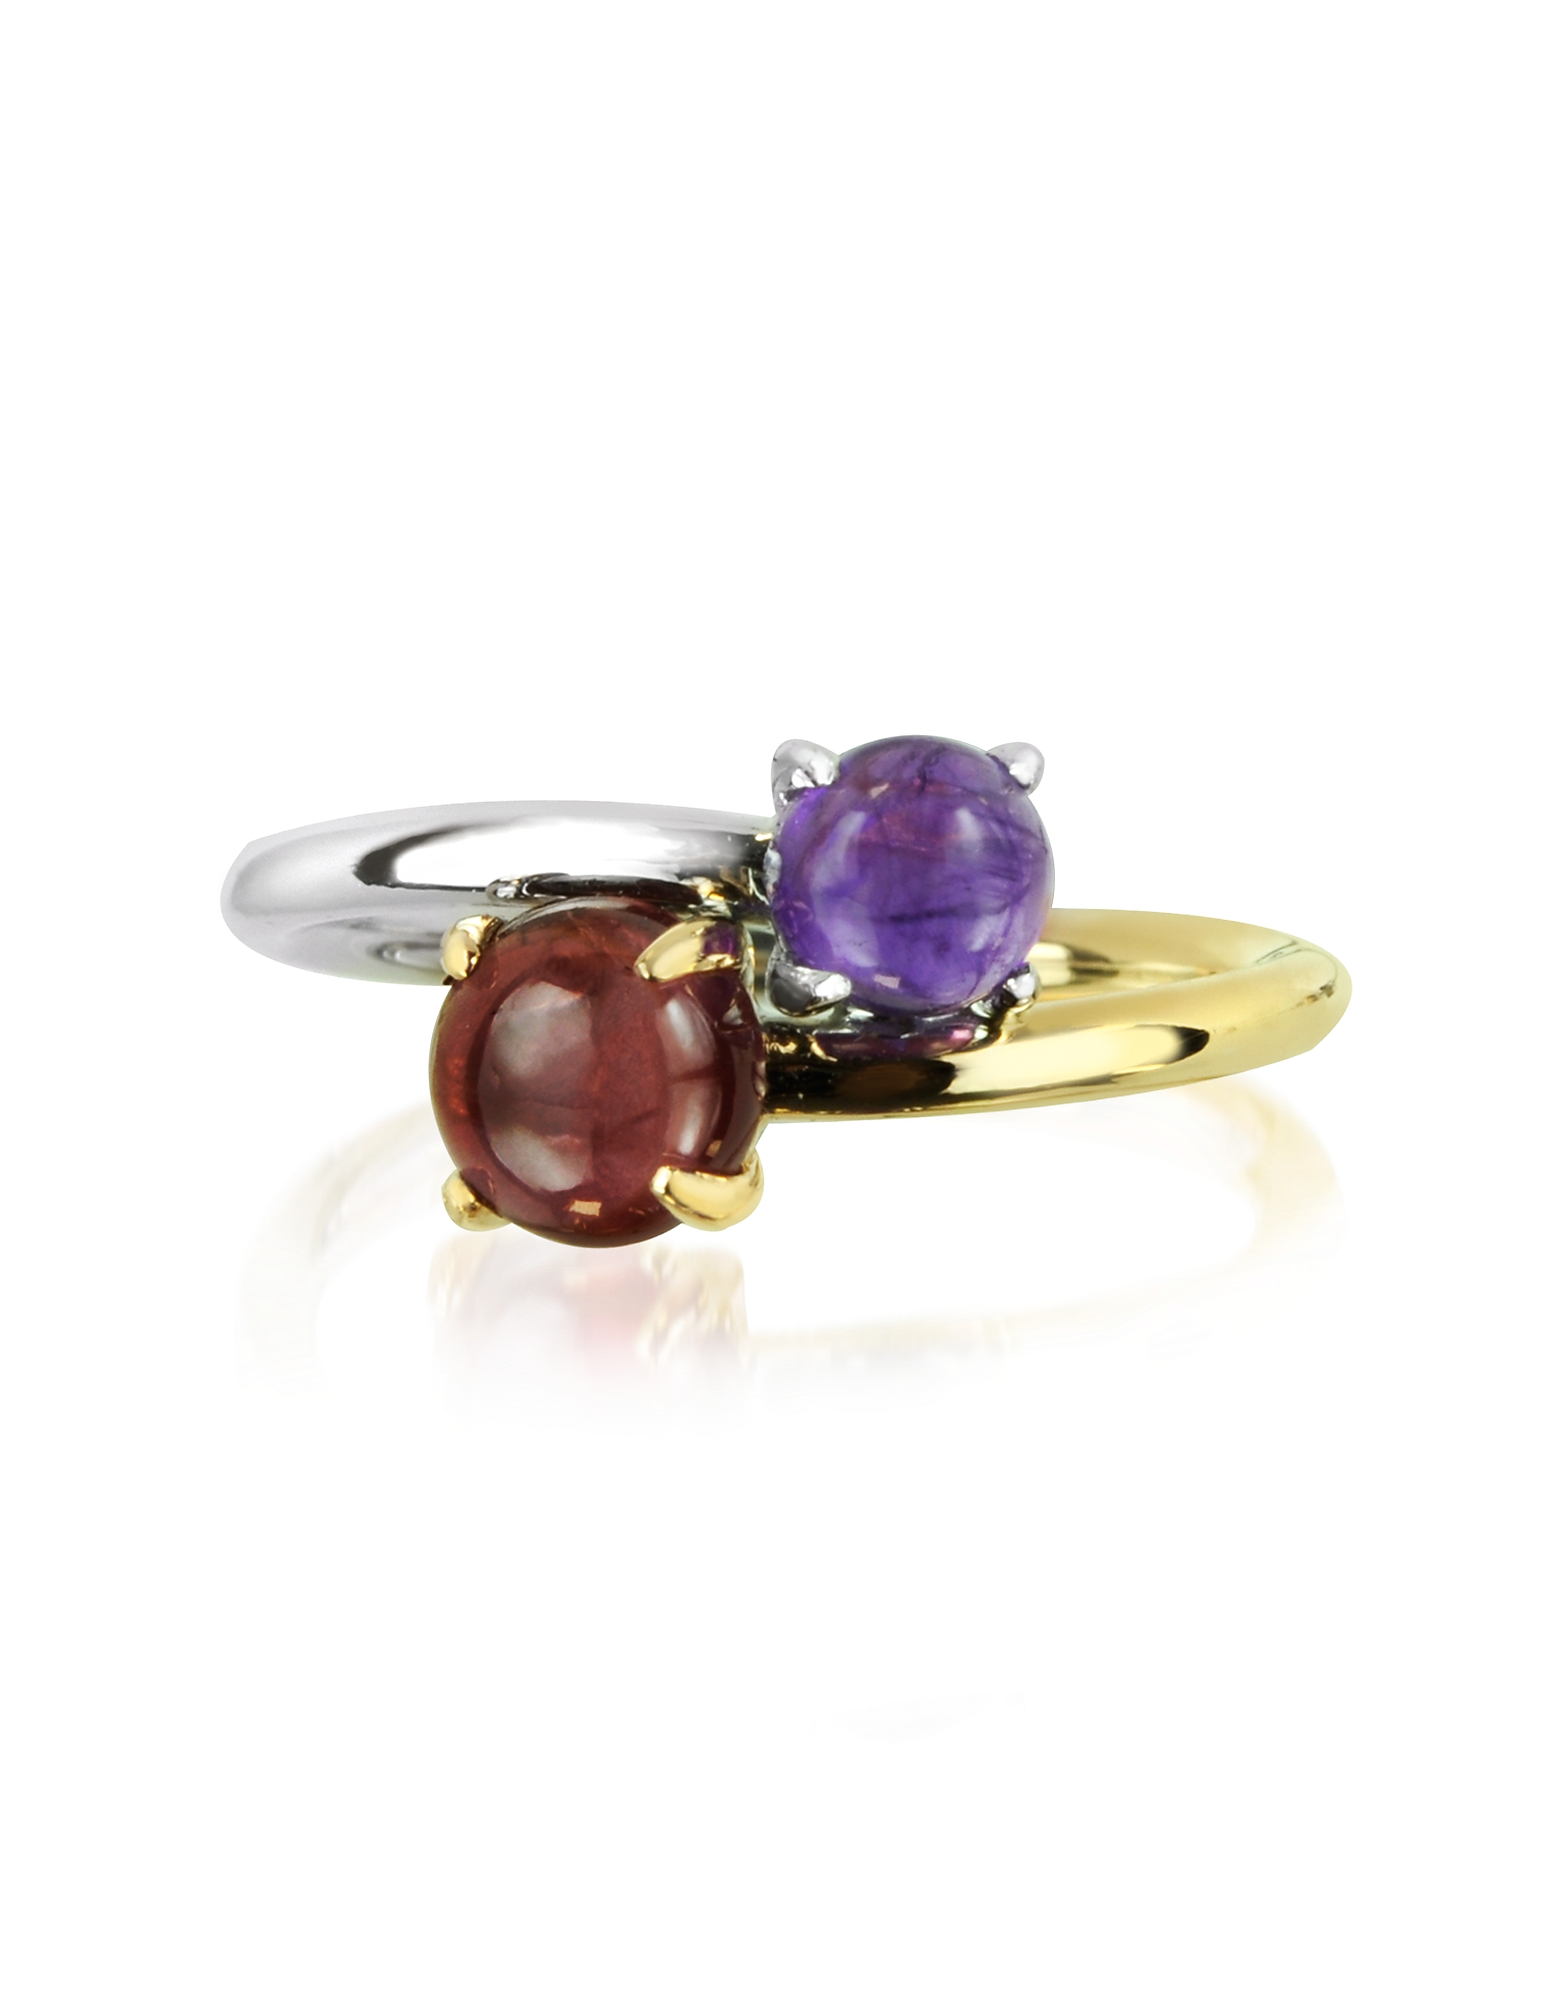 Mia & Beverly Rings, Amethyst and Garnet 18K White & Yellow Gold